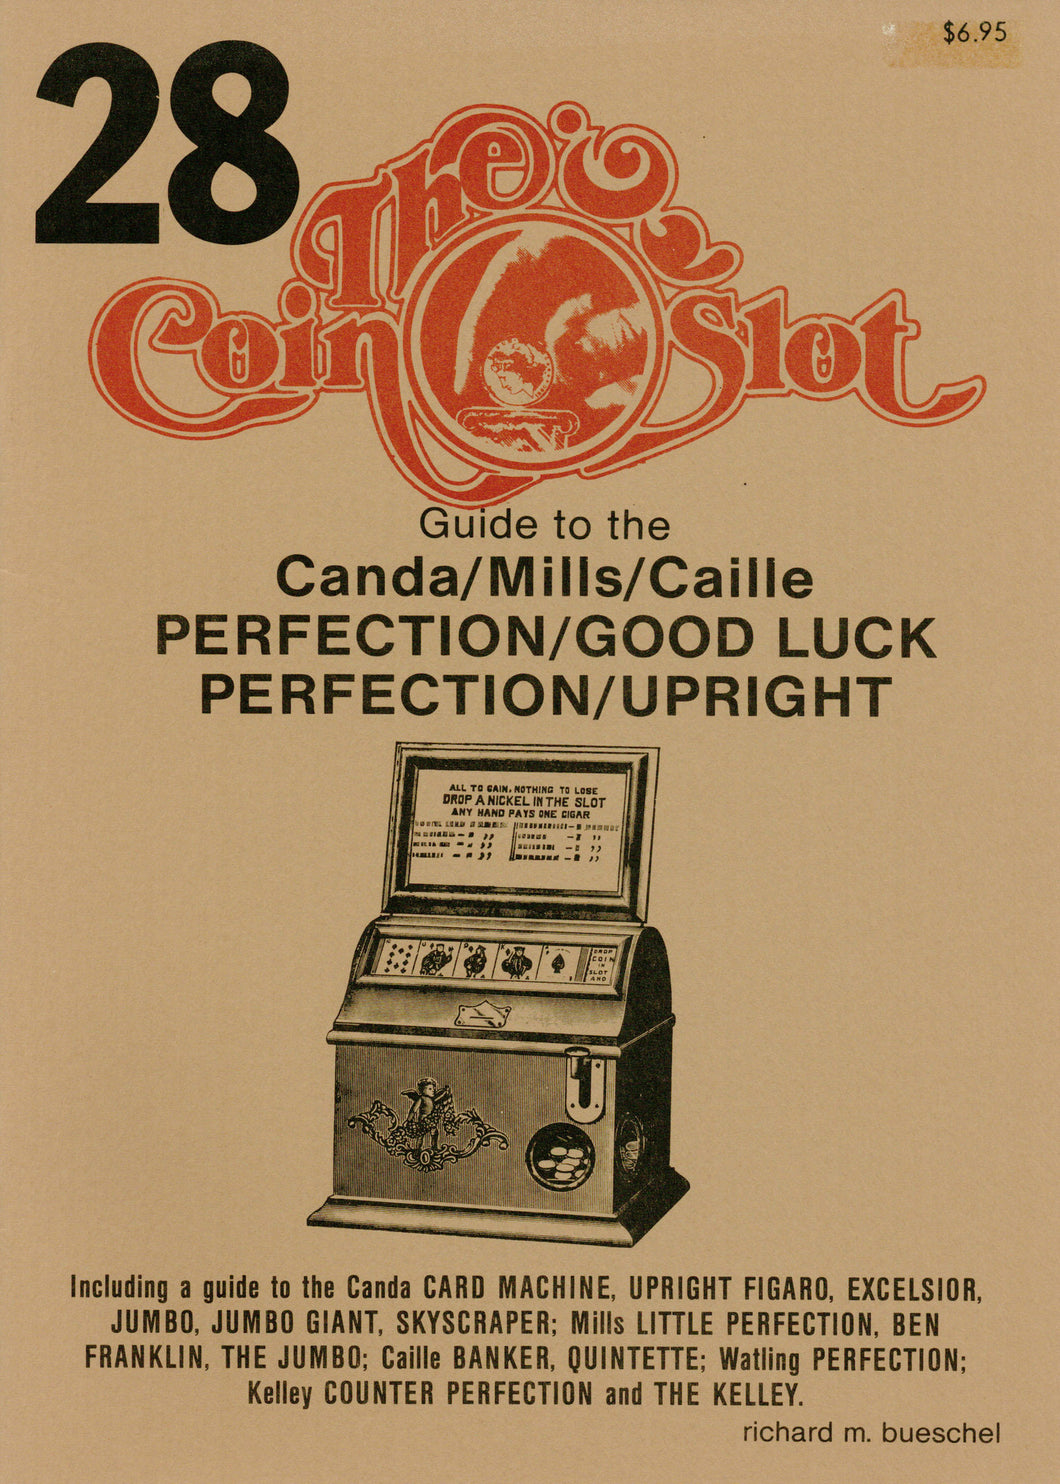 Coin Slot #28. Guide to the Canda/Mills/Caille Perfection/Good Luck Perfection/Upright